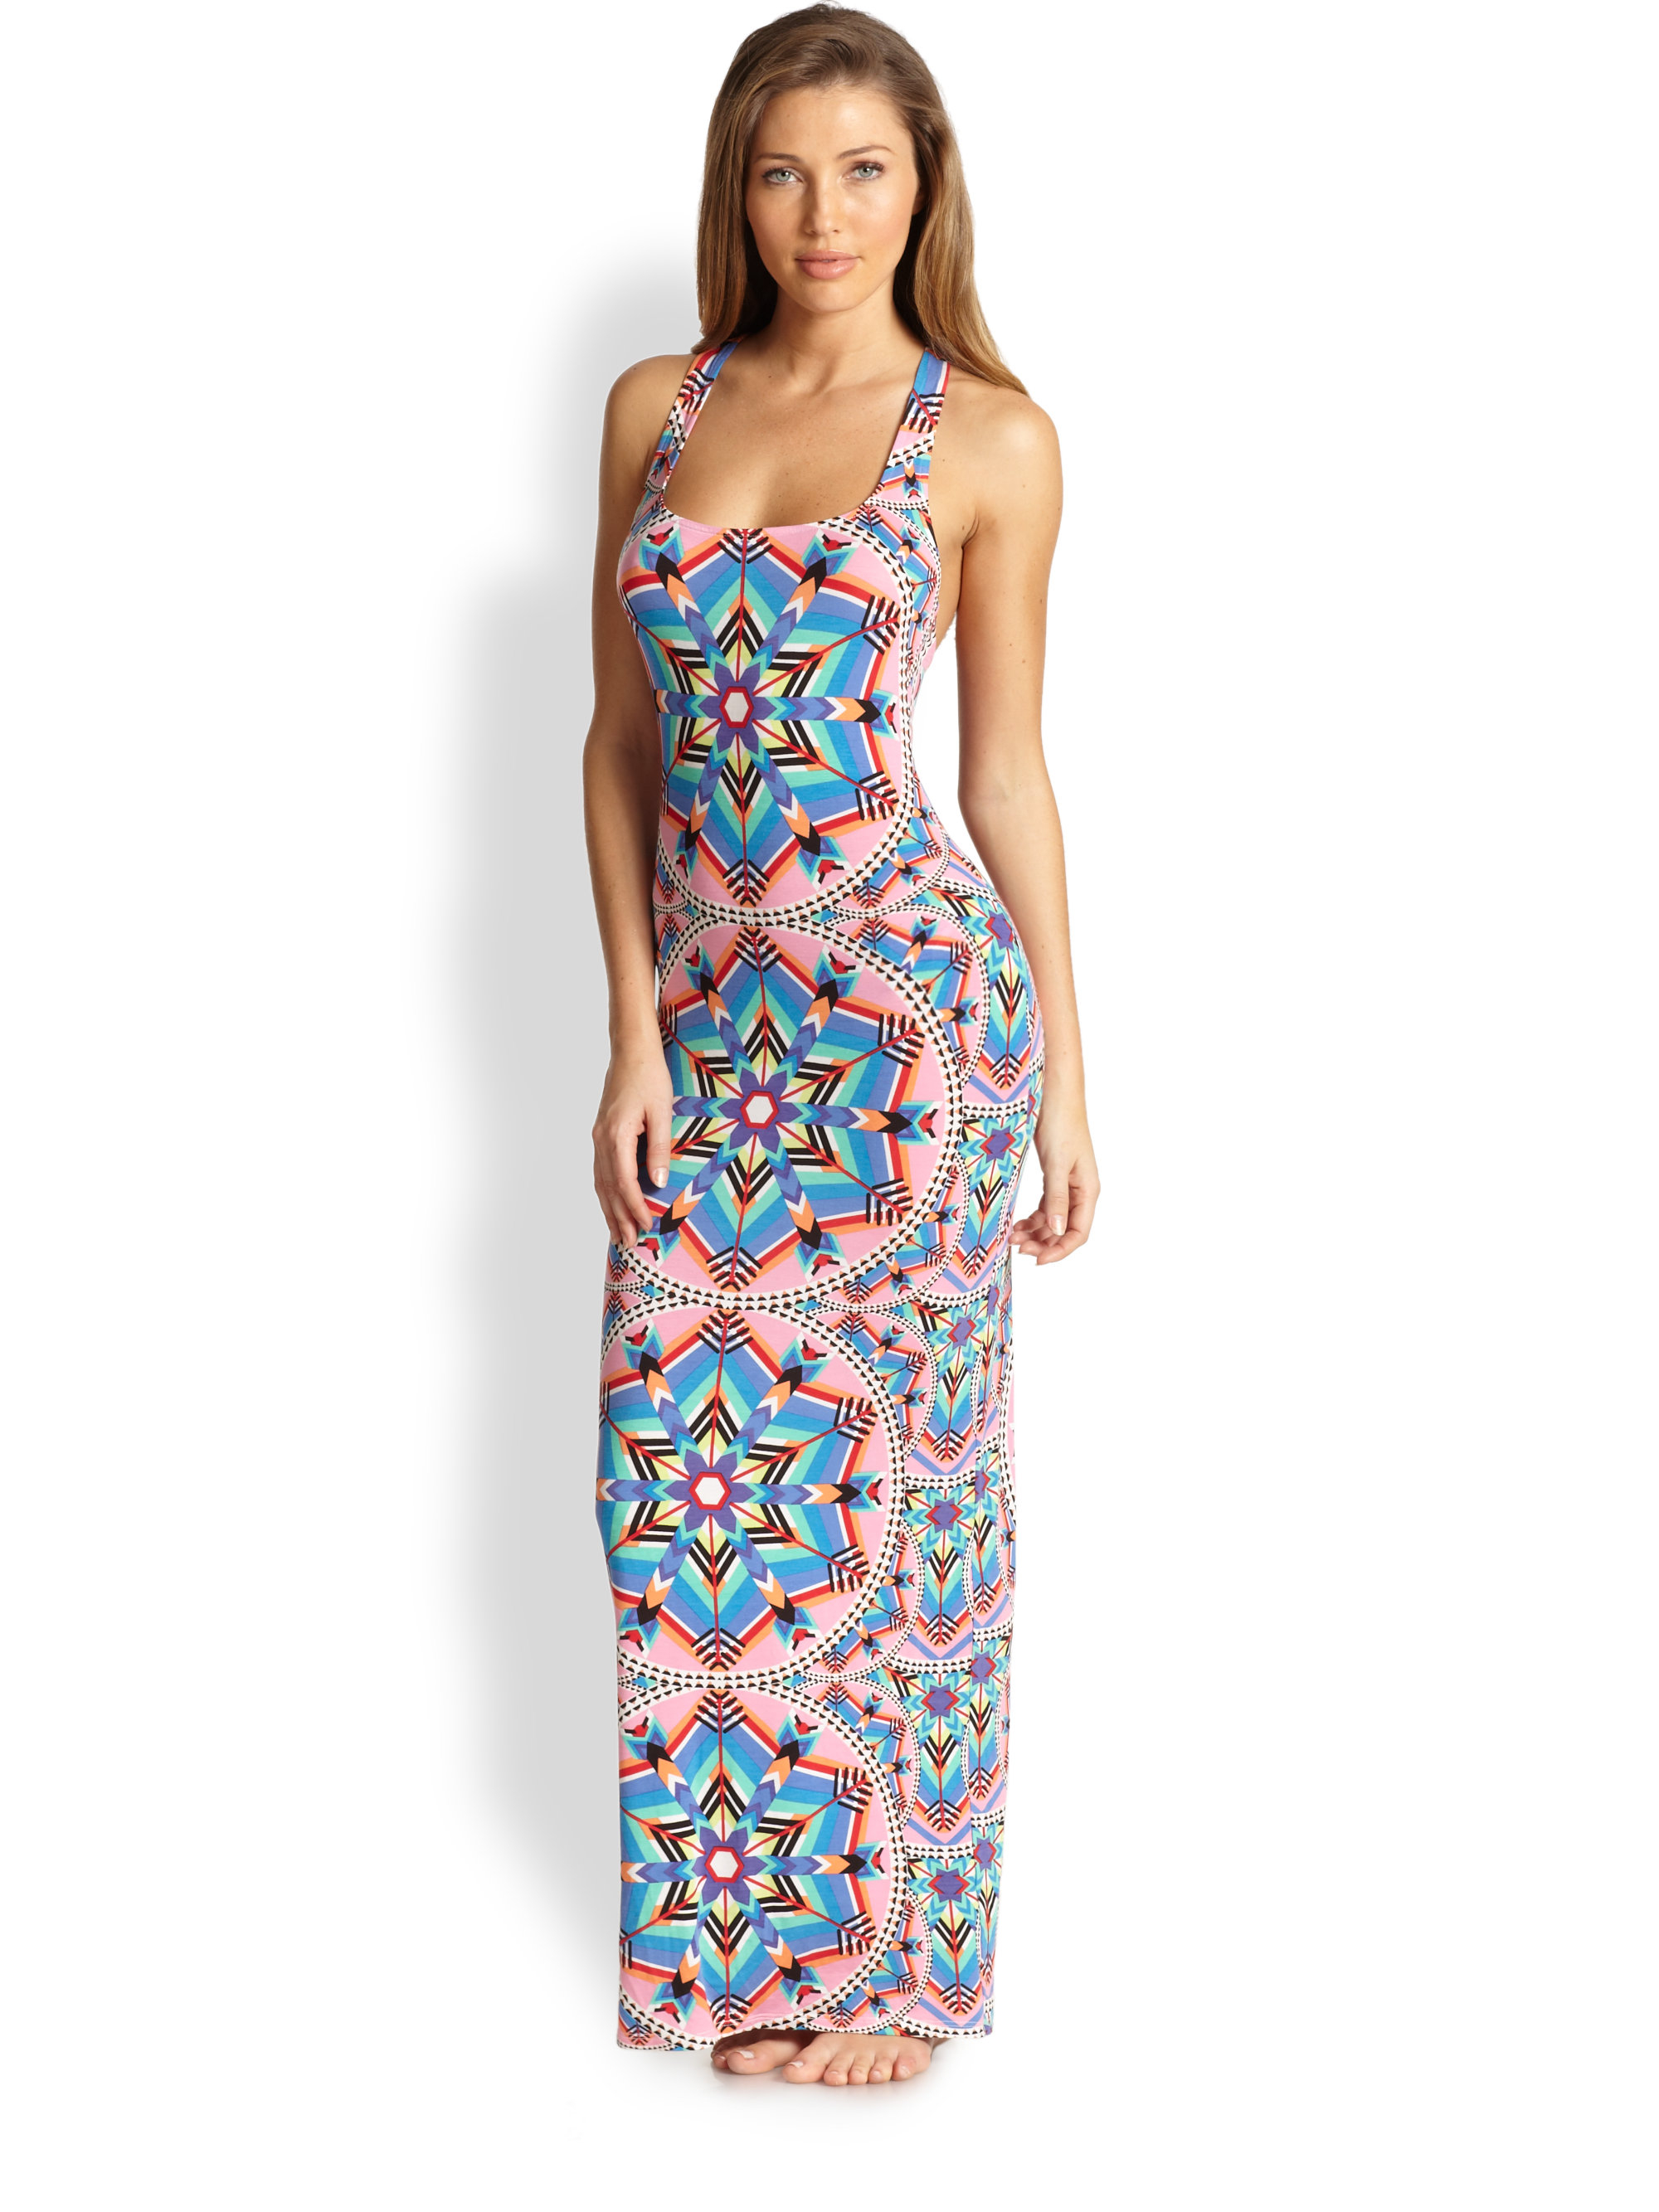 Mara hoffman Kites Racerback Maxi Dress in Blue | Lyst